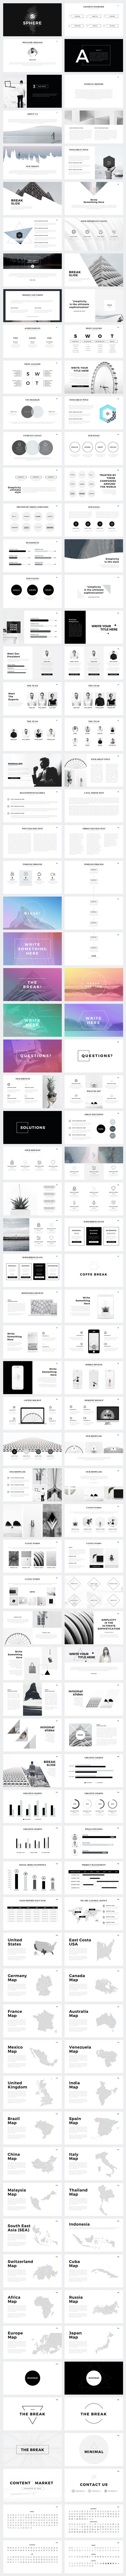 best ideas about cool powerpoint presentation show your works professional and clean this trending minimal powerpoint template sphere is a